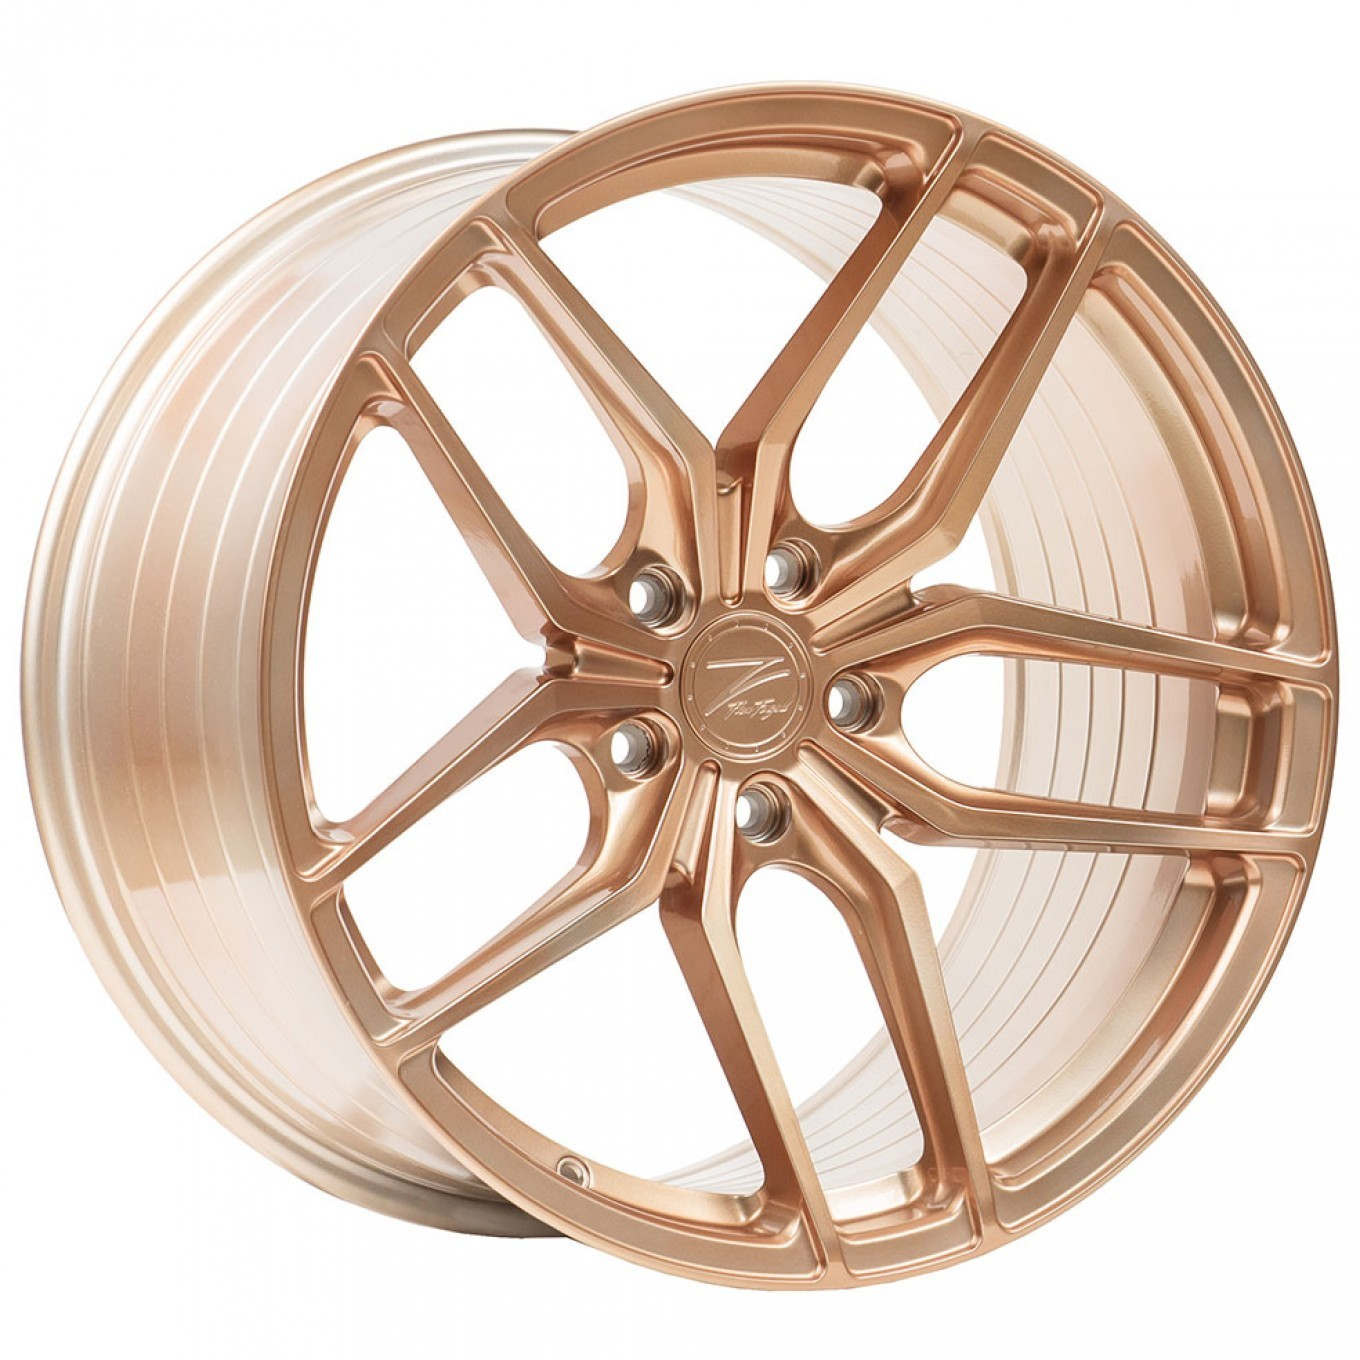 Z-Performance ZP2.1 9x19 ET45 5x120 FlowForged Royal Copper